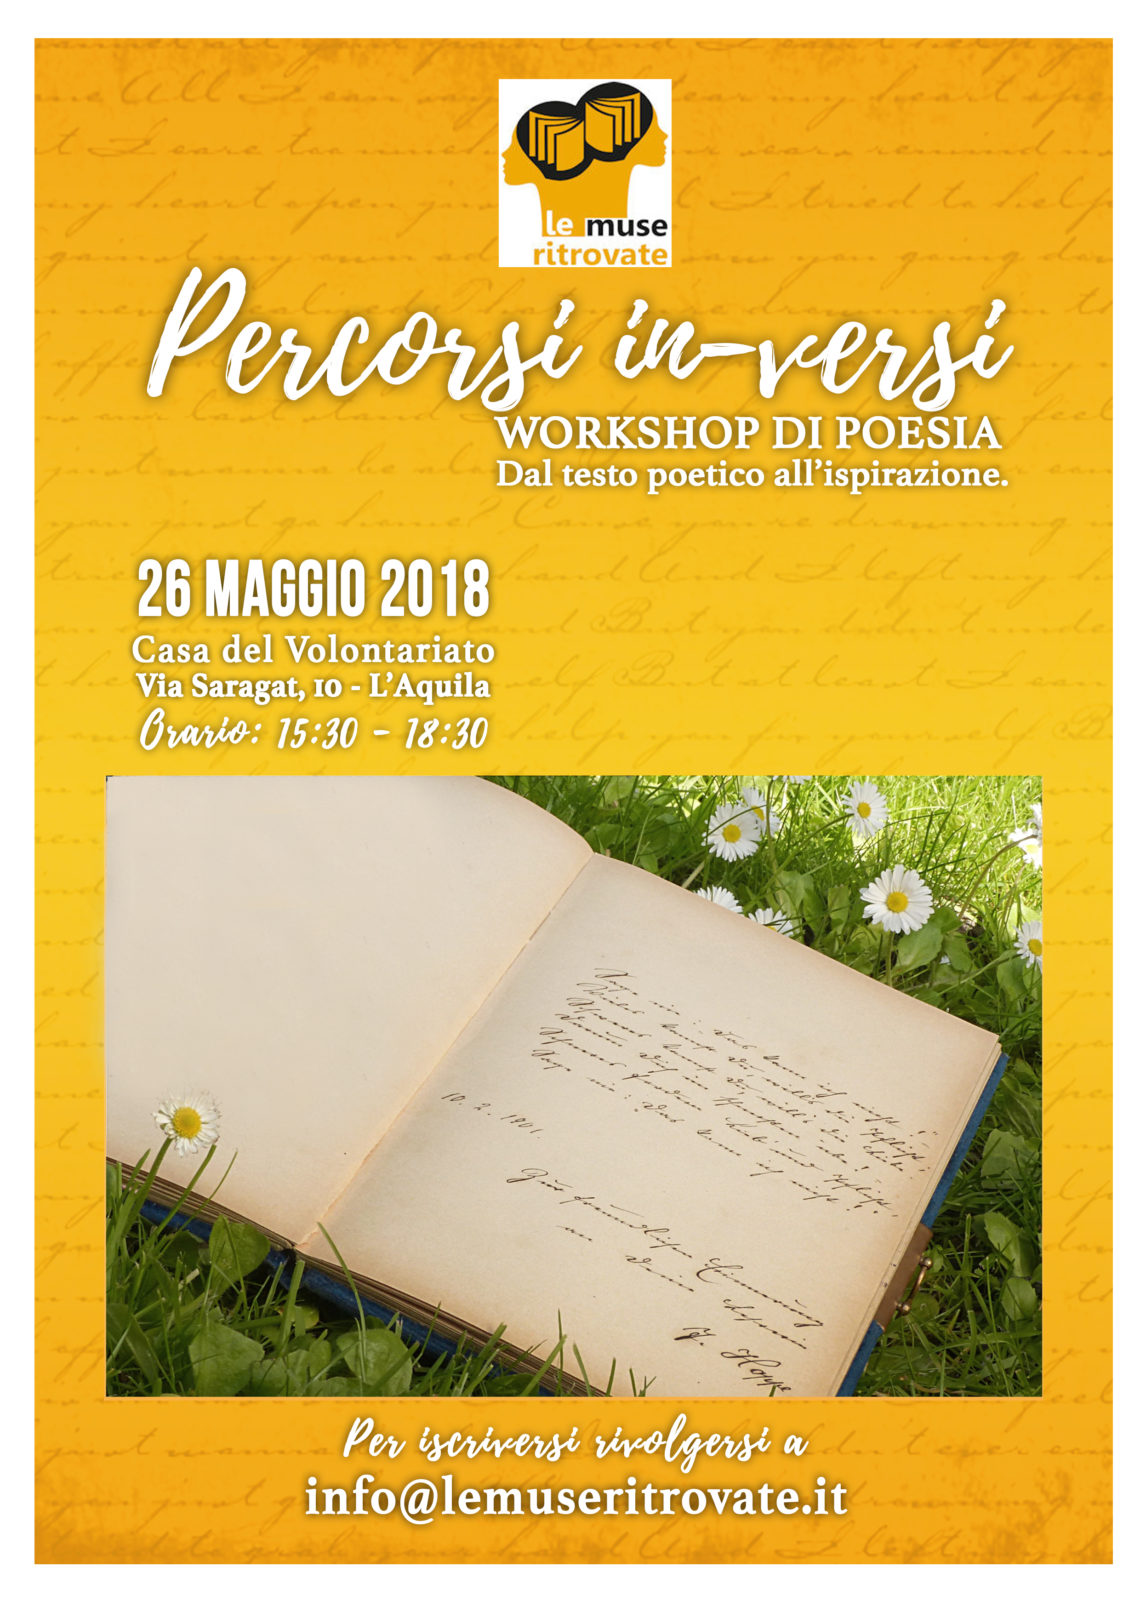 Workshop di poesia – Percorsi in-versi